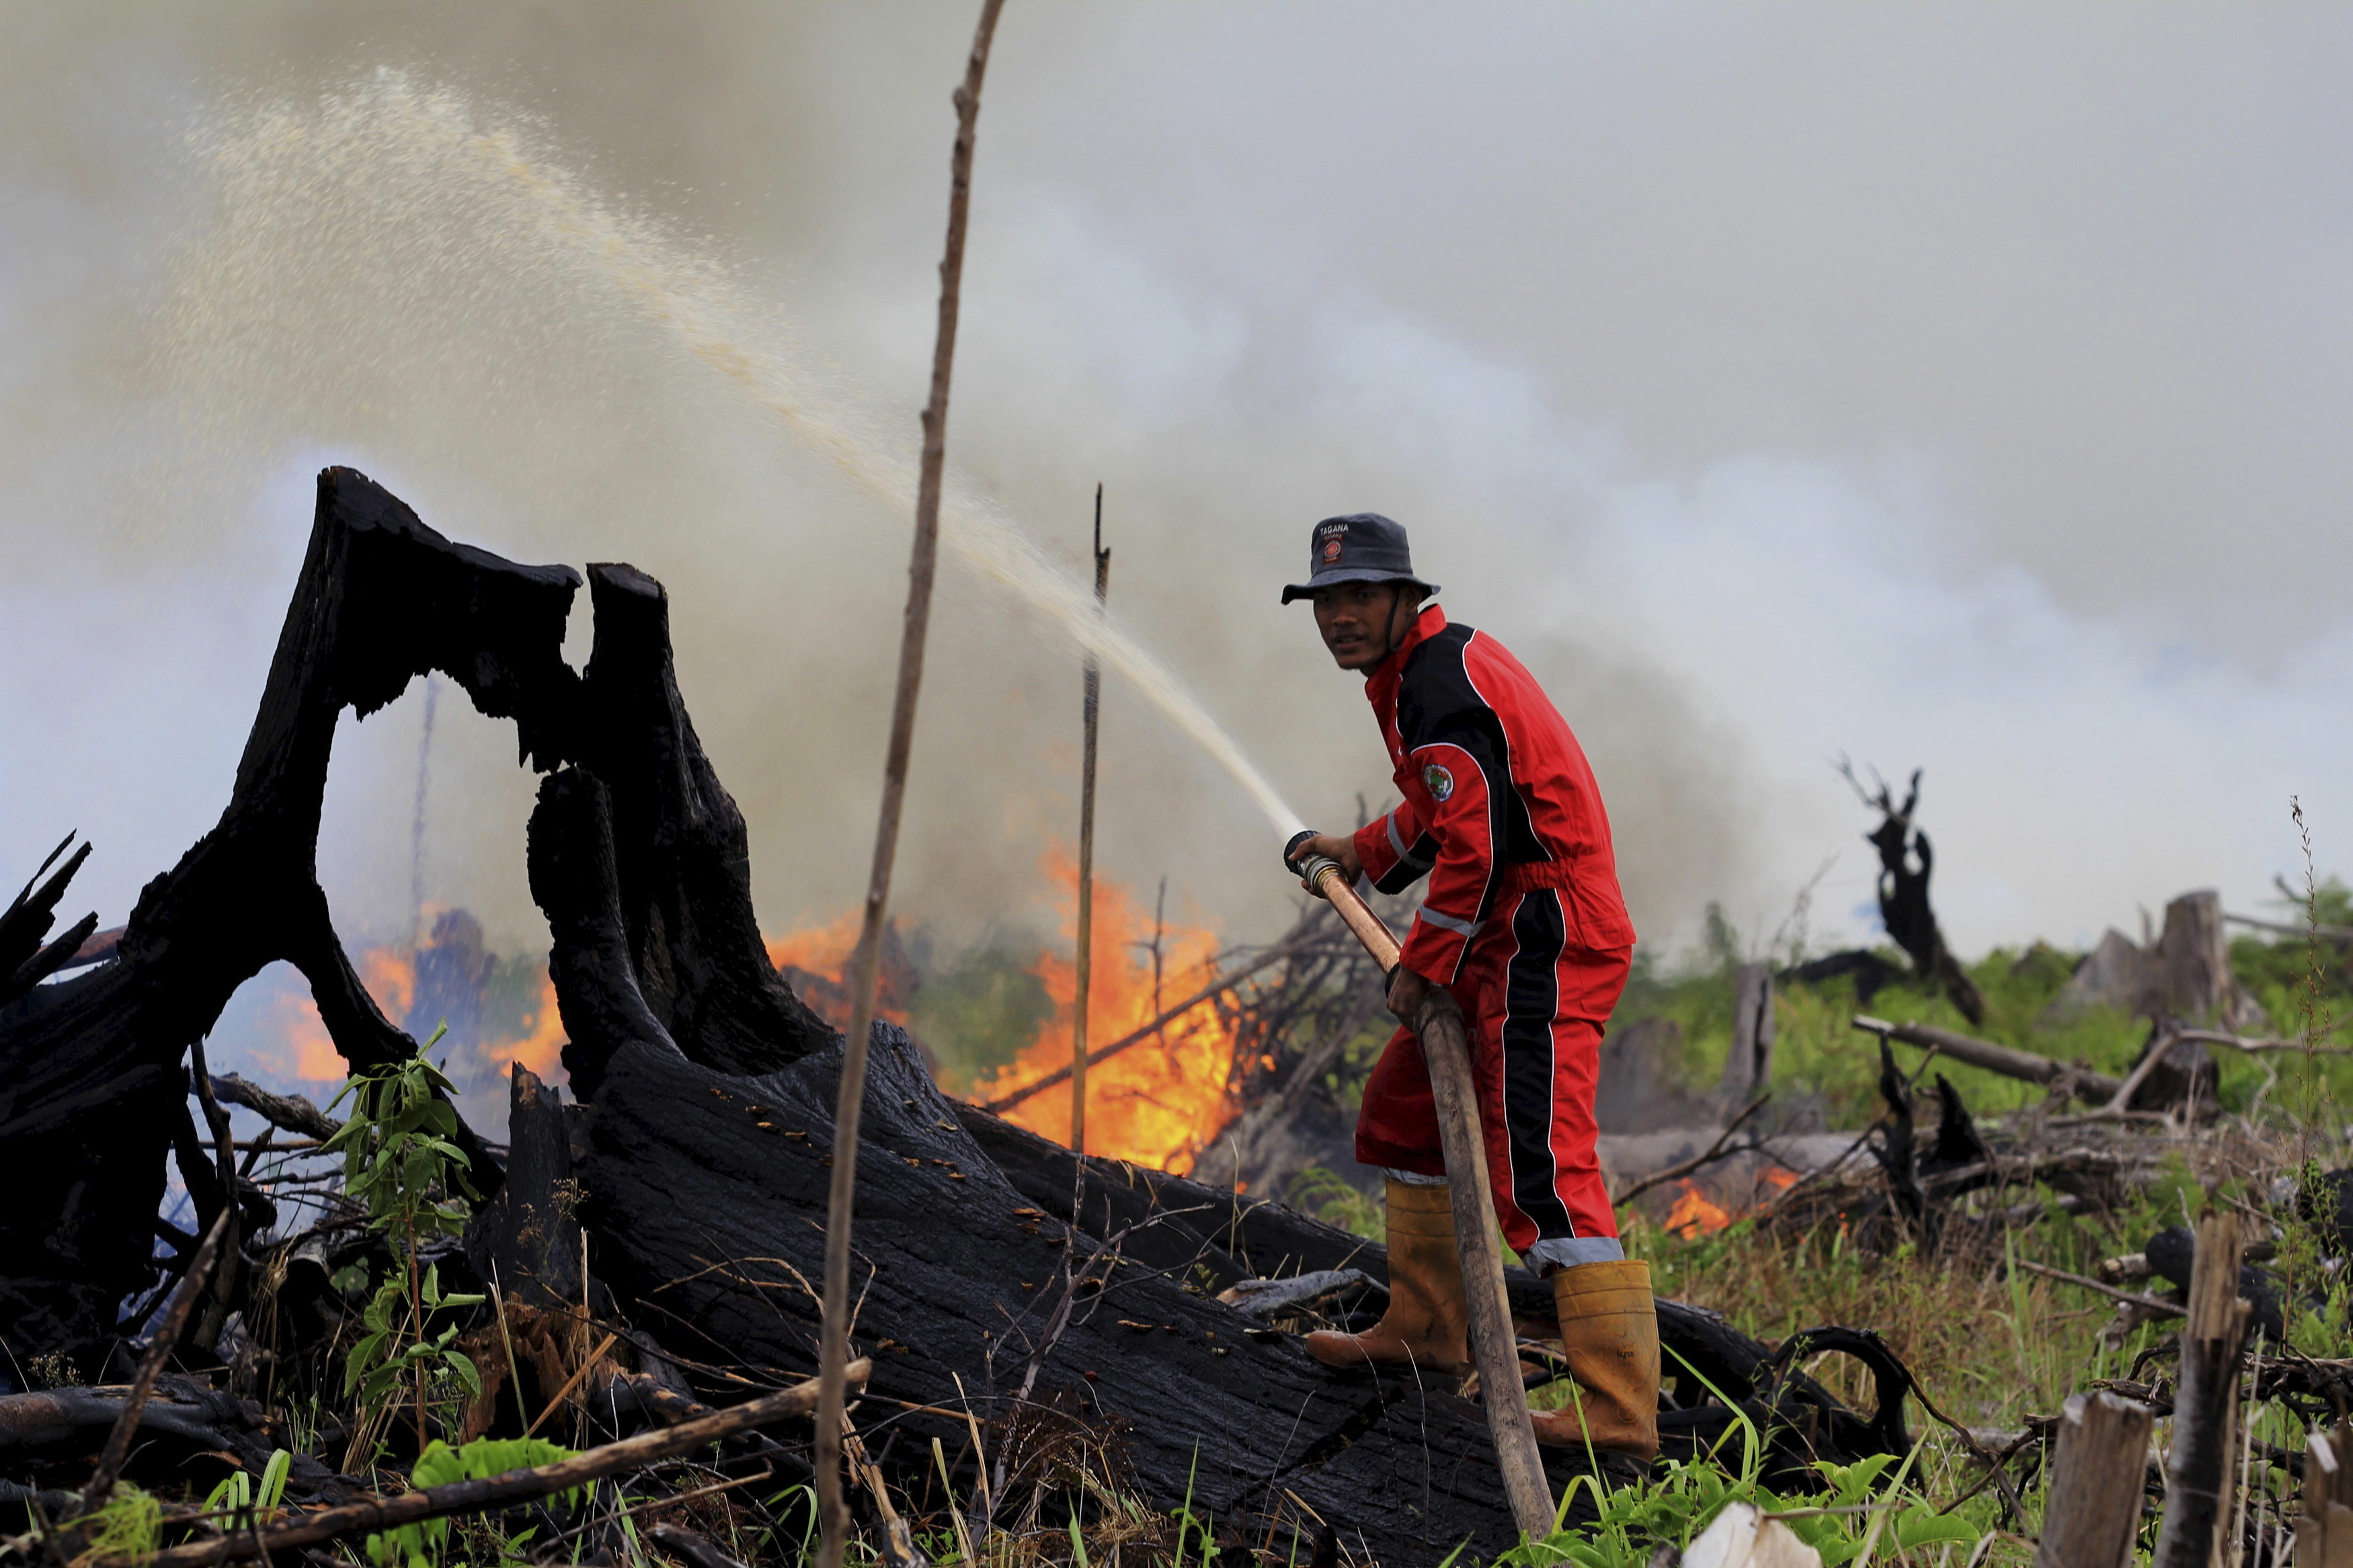 A fire fighter tries to put out a fire on land intended for a palm oil plantation in the village of Tanjung Palas, Dumai, Riau province, Sumatra, Indonesia in this photo taken by Antara Foto on March 5, 2016. Indonesia's western province of Riau has declared a state of emergency over forest and land fires blazing on the island of Sumatra, a government official said on Tuesday. Picture taken March 5, 2016.REUTERS/Aswaddy Hamid/Antara Foto ATTENTION EDITORS - THIS IMAGE HAS BEEN SUPPLIED BY A THIRD PARTY. IT IS DISTRIBUTED, EXACTLY AS RECEIVED BY REUTERS, AS A SERVICE TO CLIENTS. FOR EDITORIAL USE ONLY. NOT FOR SALE FOR MARKETING OR ADVERTISING CAMPAIGNS. MANDATORY CREDIT. INDONESIA OUT. NO COMMERCIAL OR EDITORIAL SALES IN INDONESIA. - GF10000337622